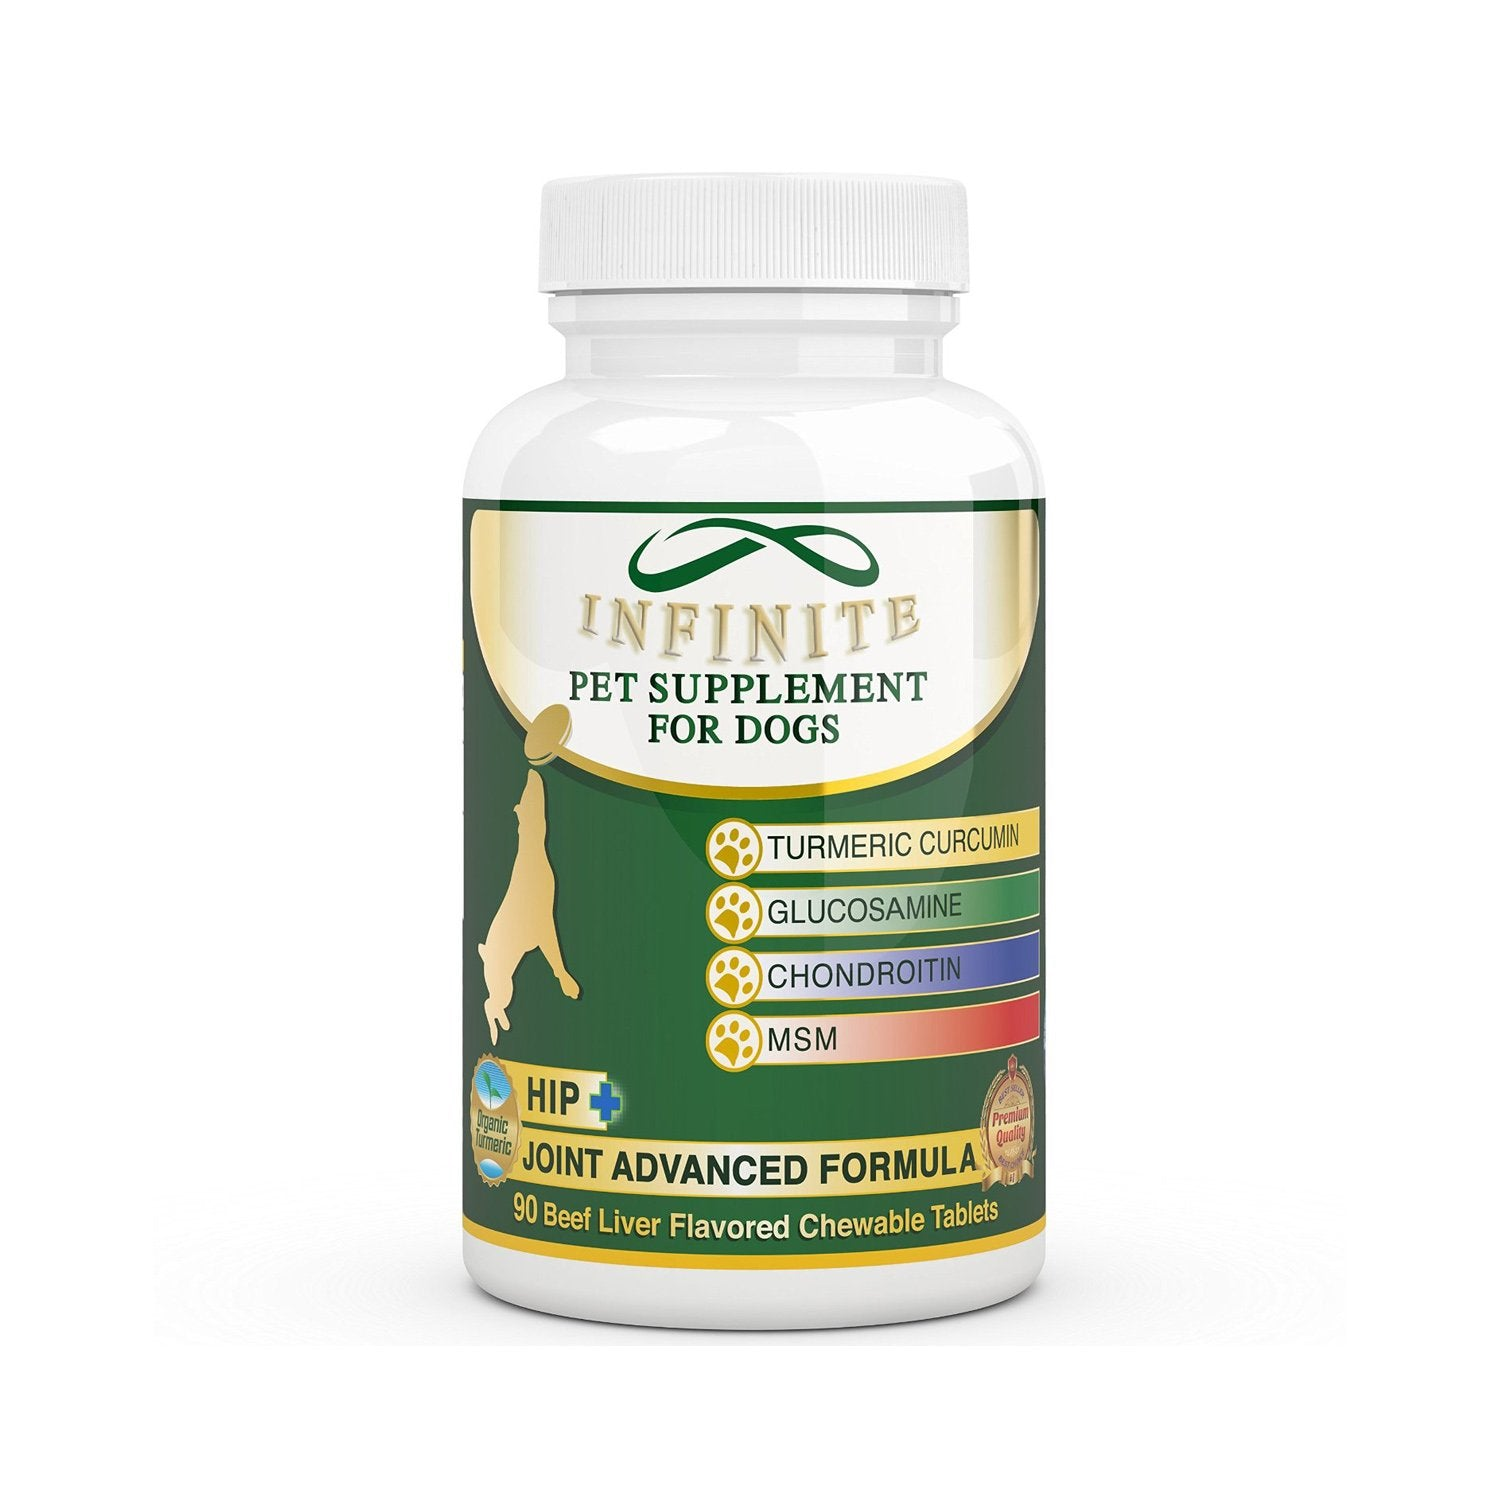 Infinite Hip & Joint Supplement for Dogs